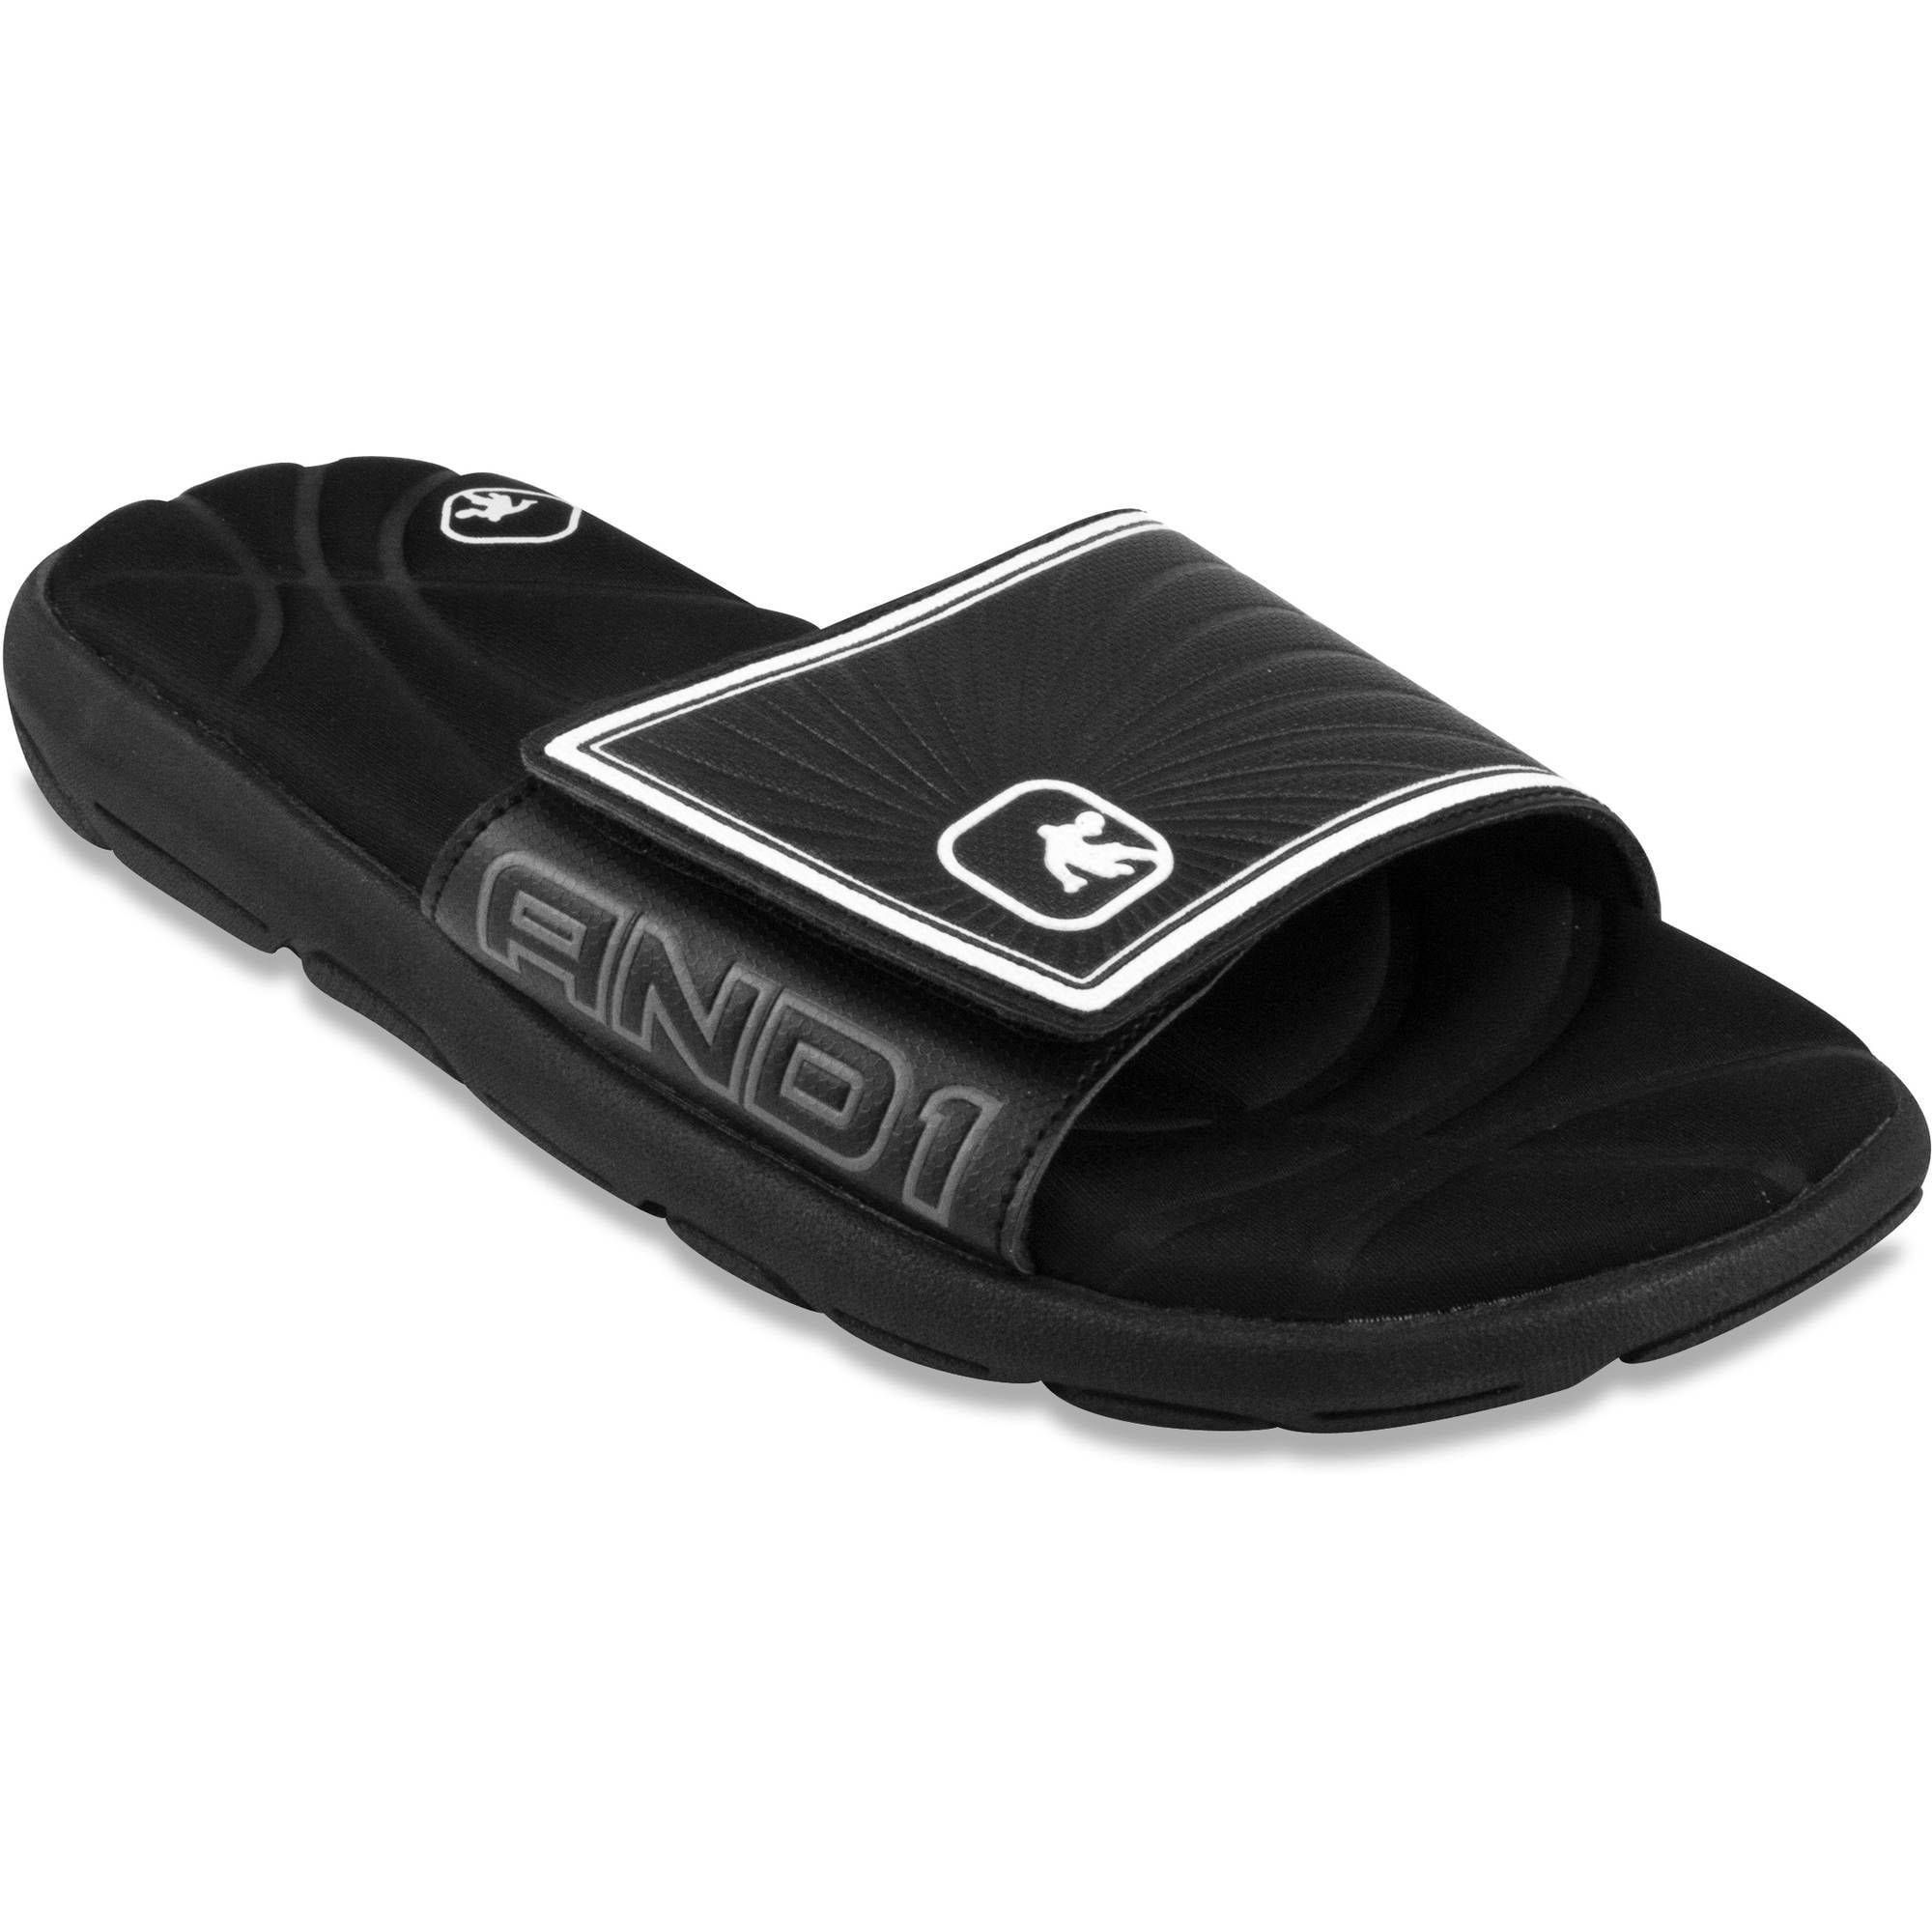 AND1 Men's Baller Slide Sandal by